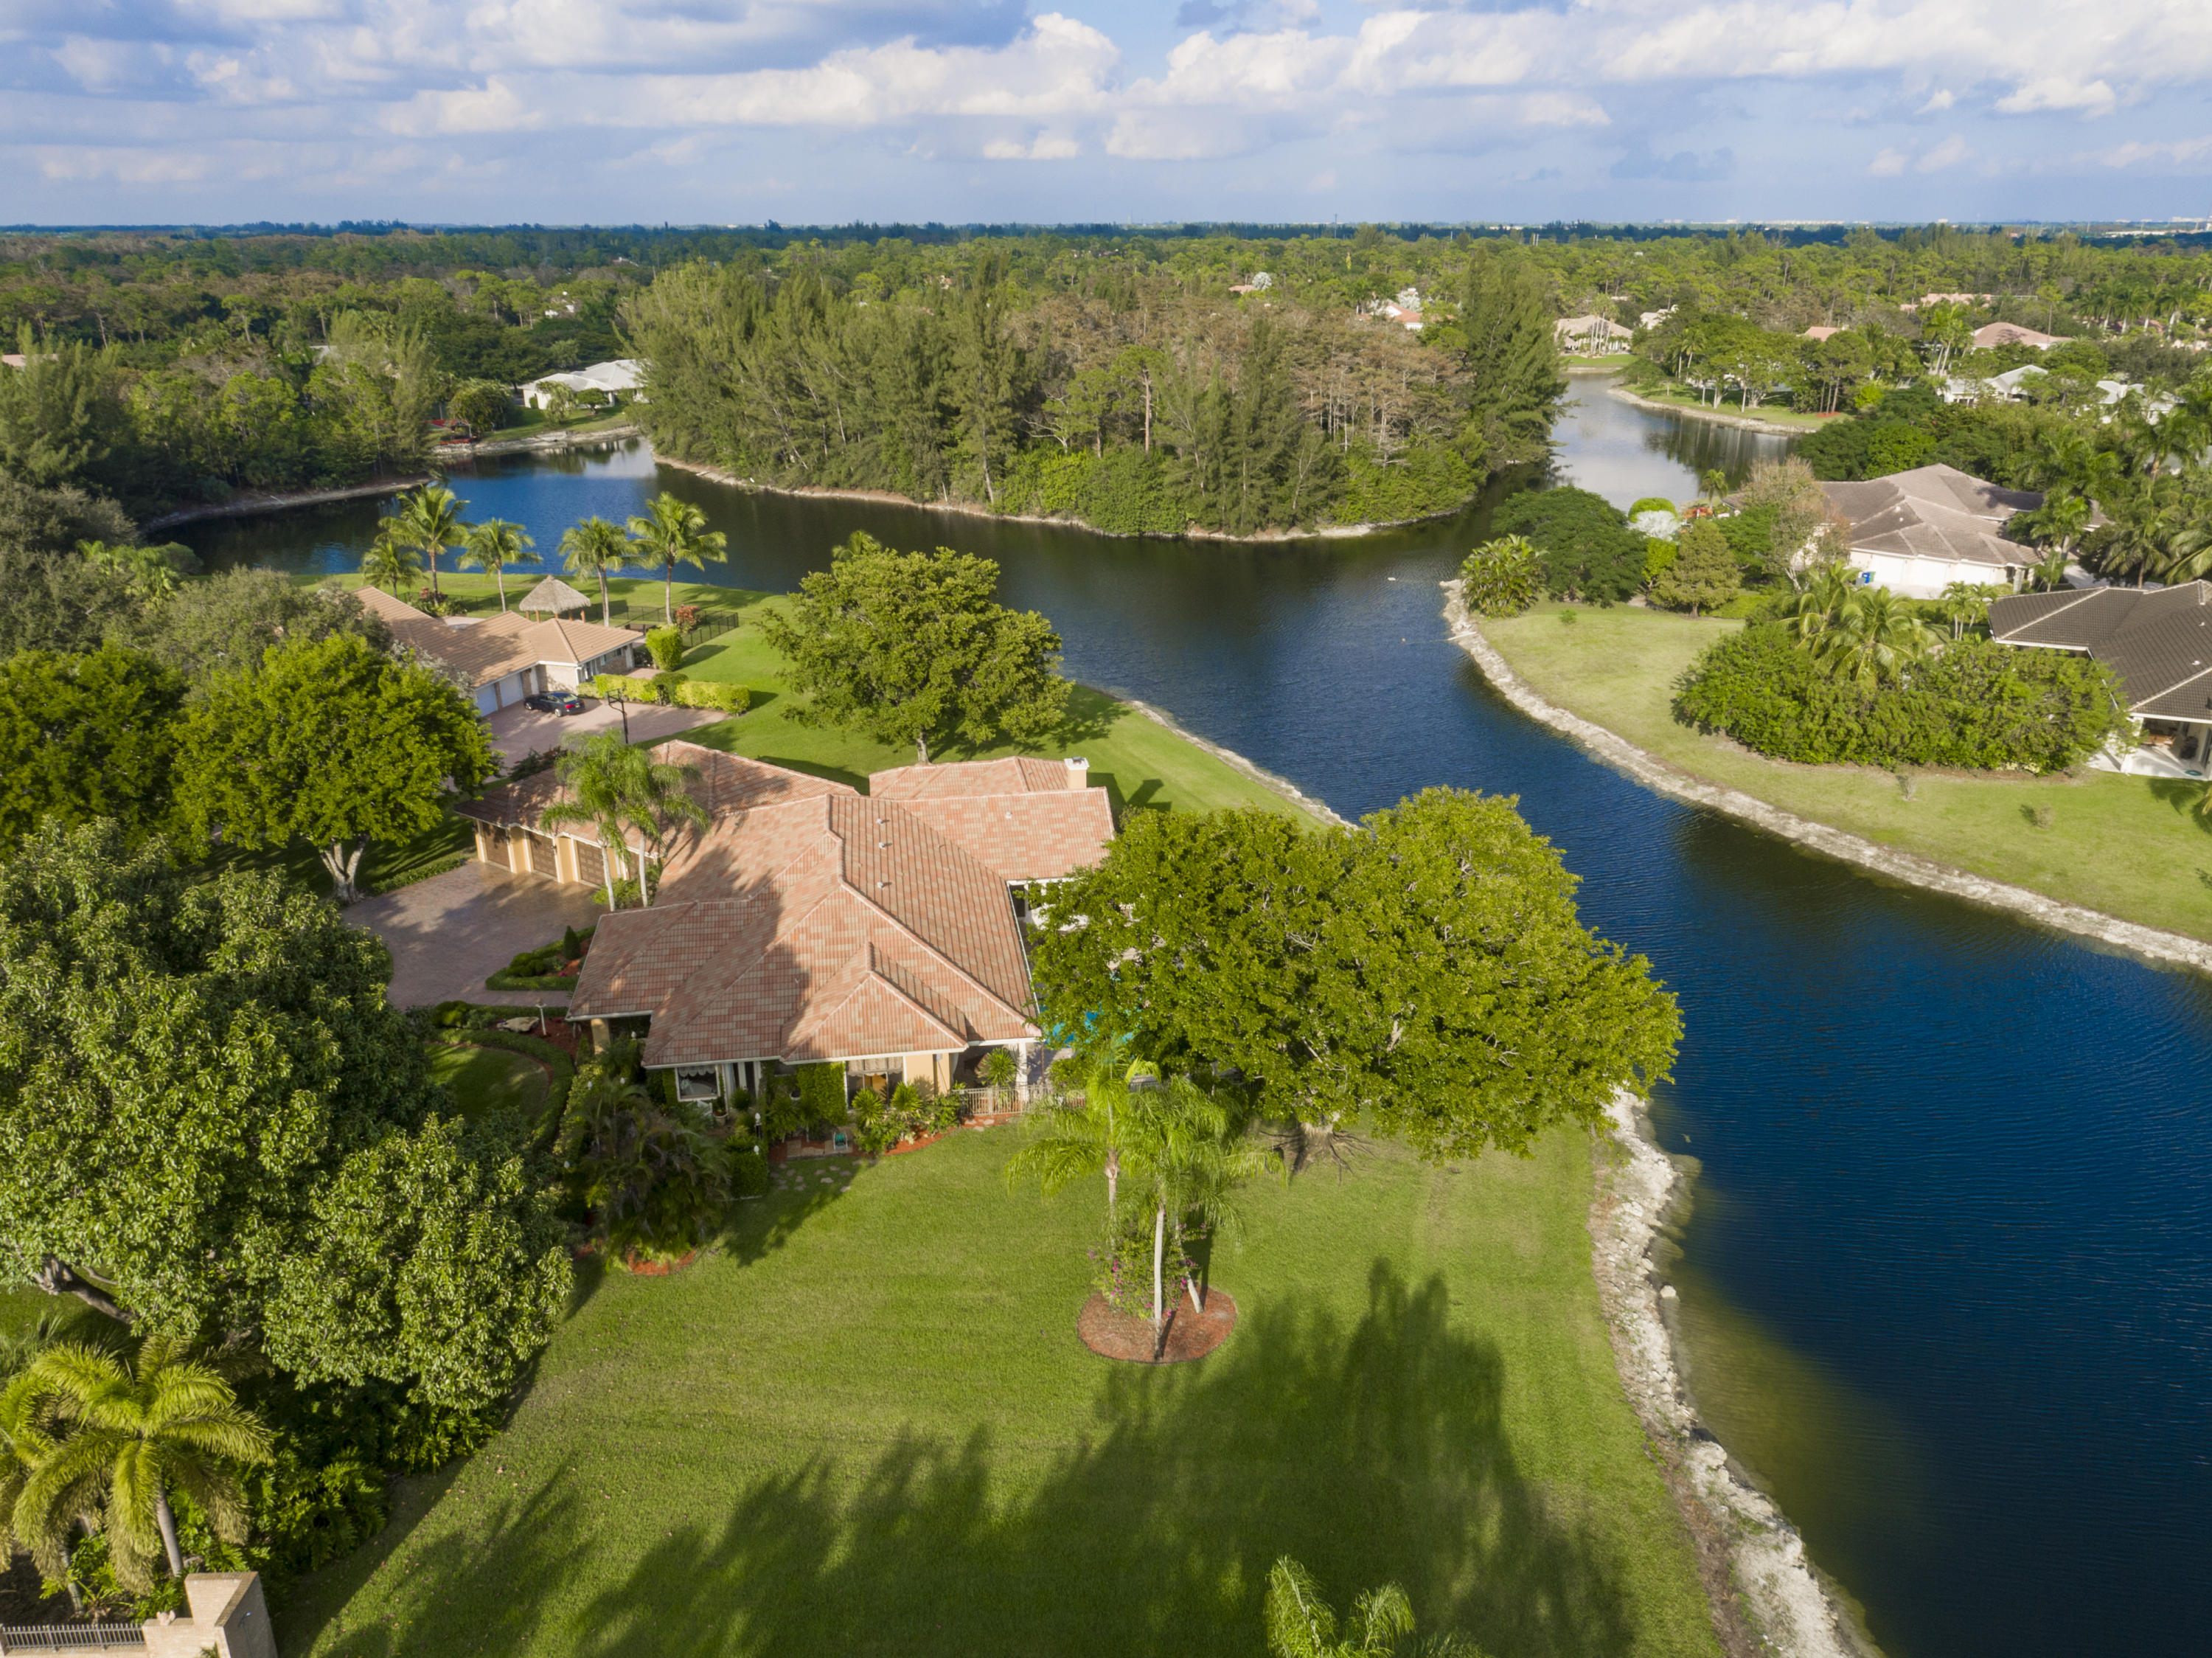 8010 NW 47 DRIVE, CORAL SPRINGS, FL 33067